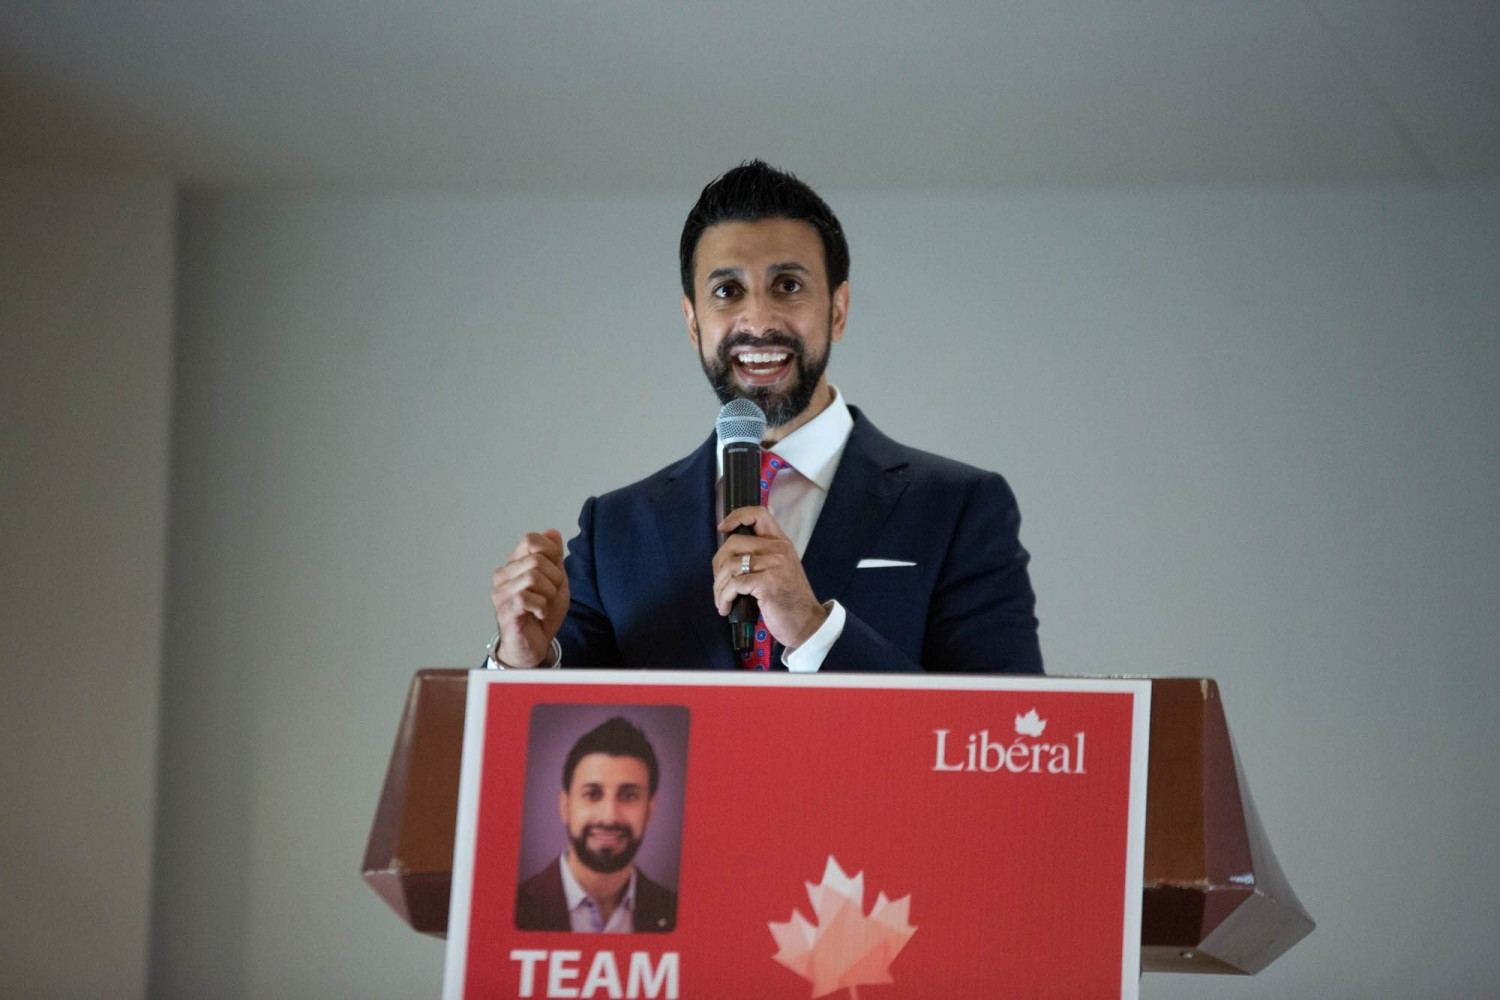 Maninder Sidhu's silence in the House of Commons